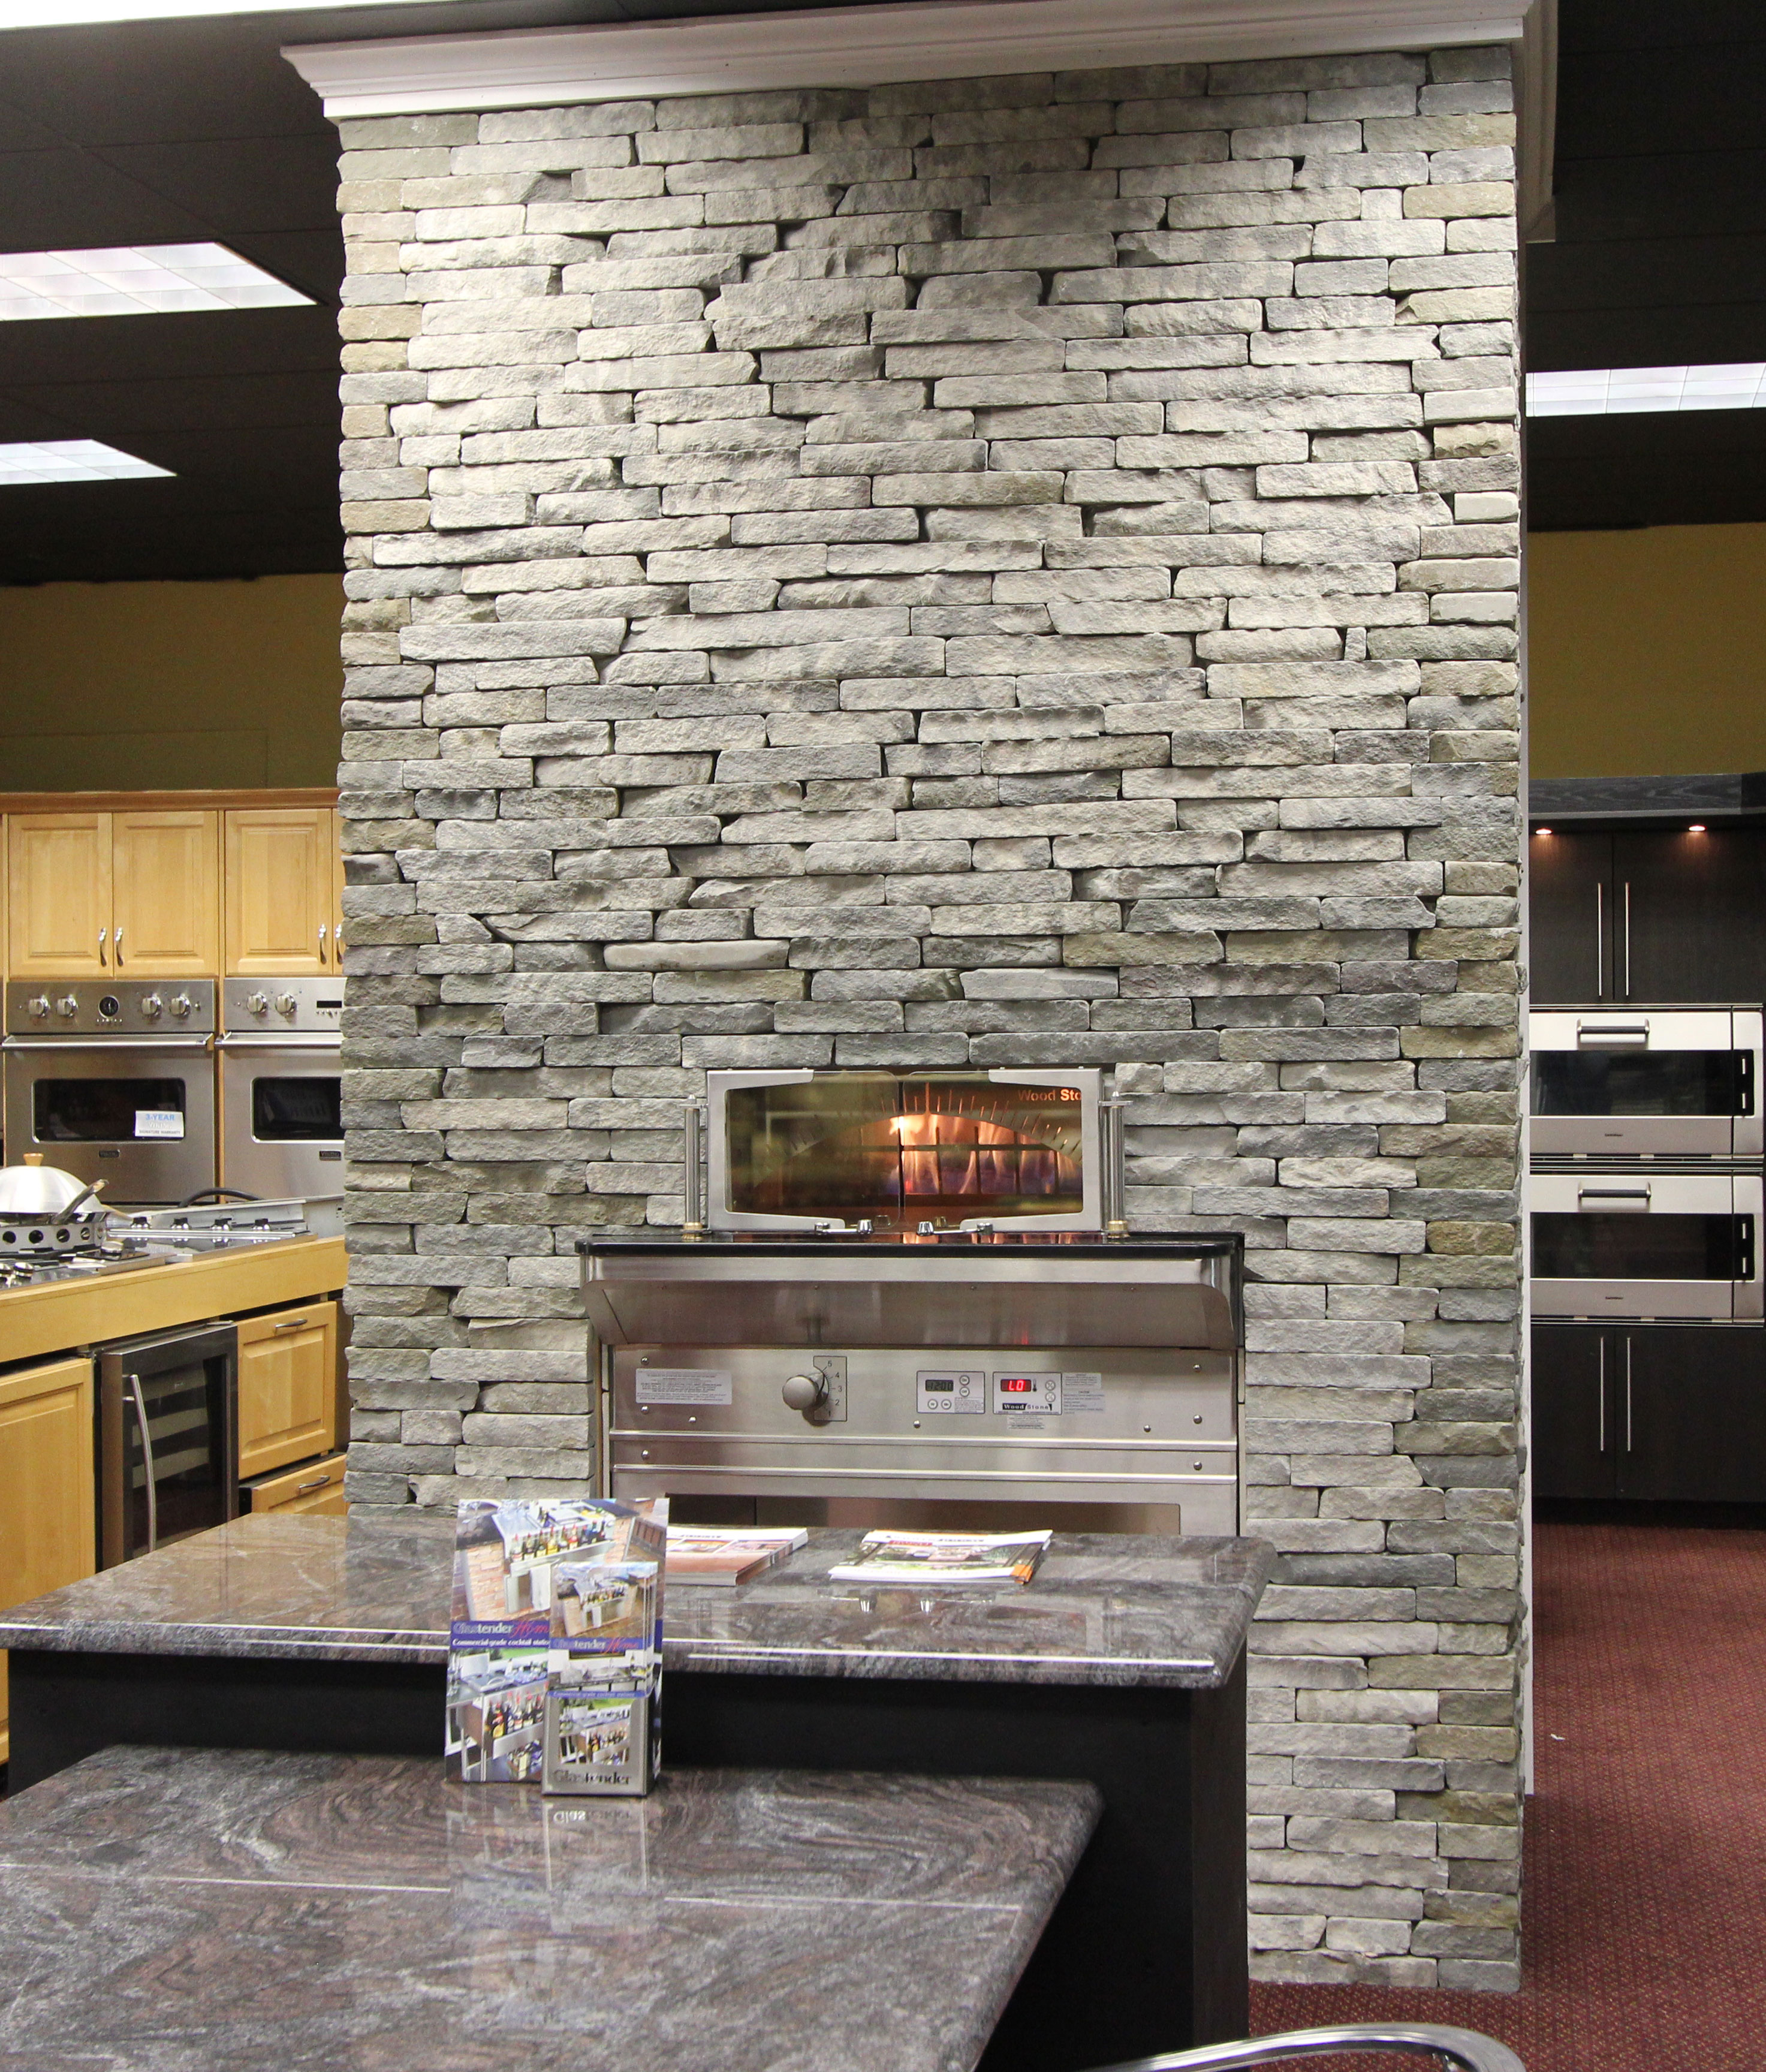 Wood Stone Home Oven in Kieffer's Appliances Showroom